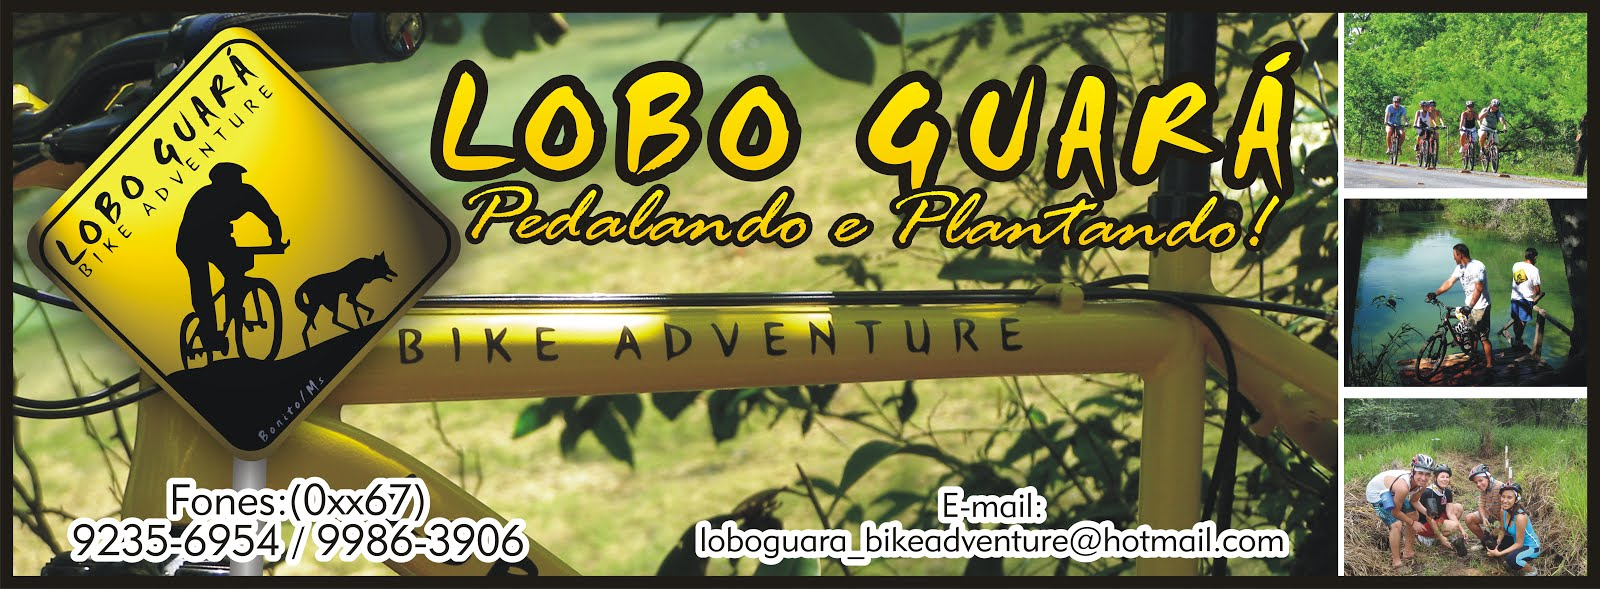 LOBO GUARA BIKE ADVENTURE, essa MUDA PEGA.